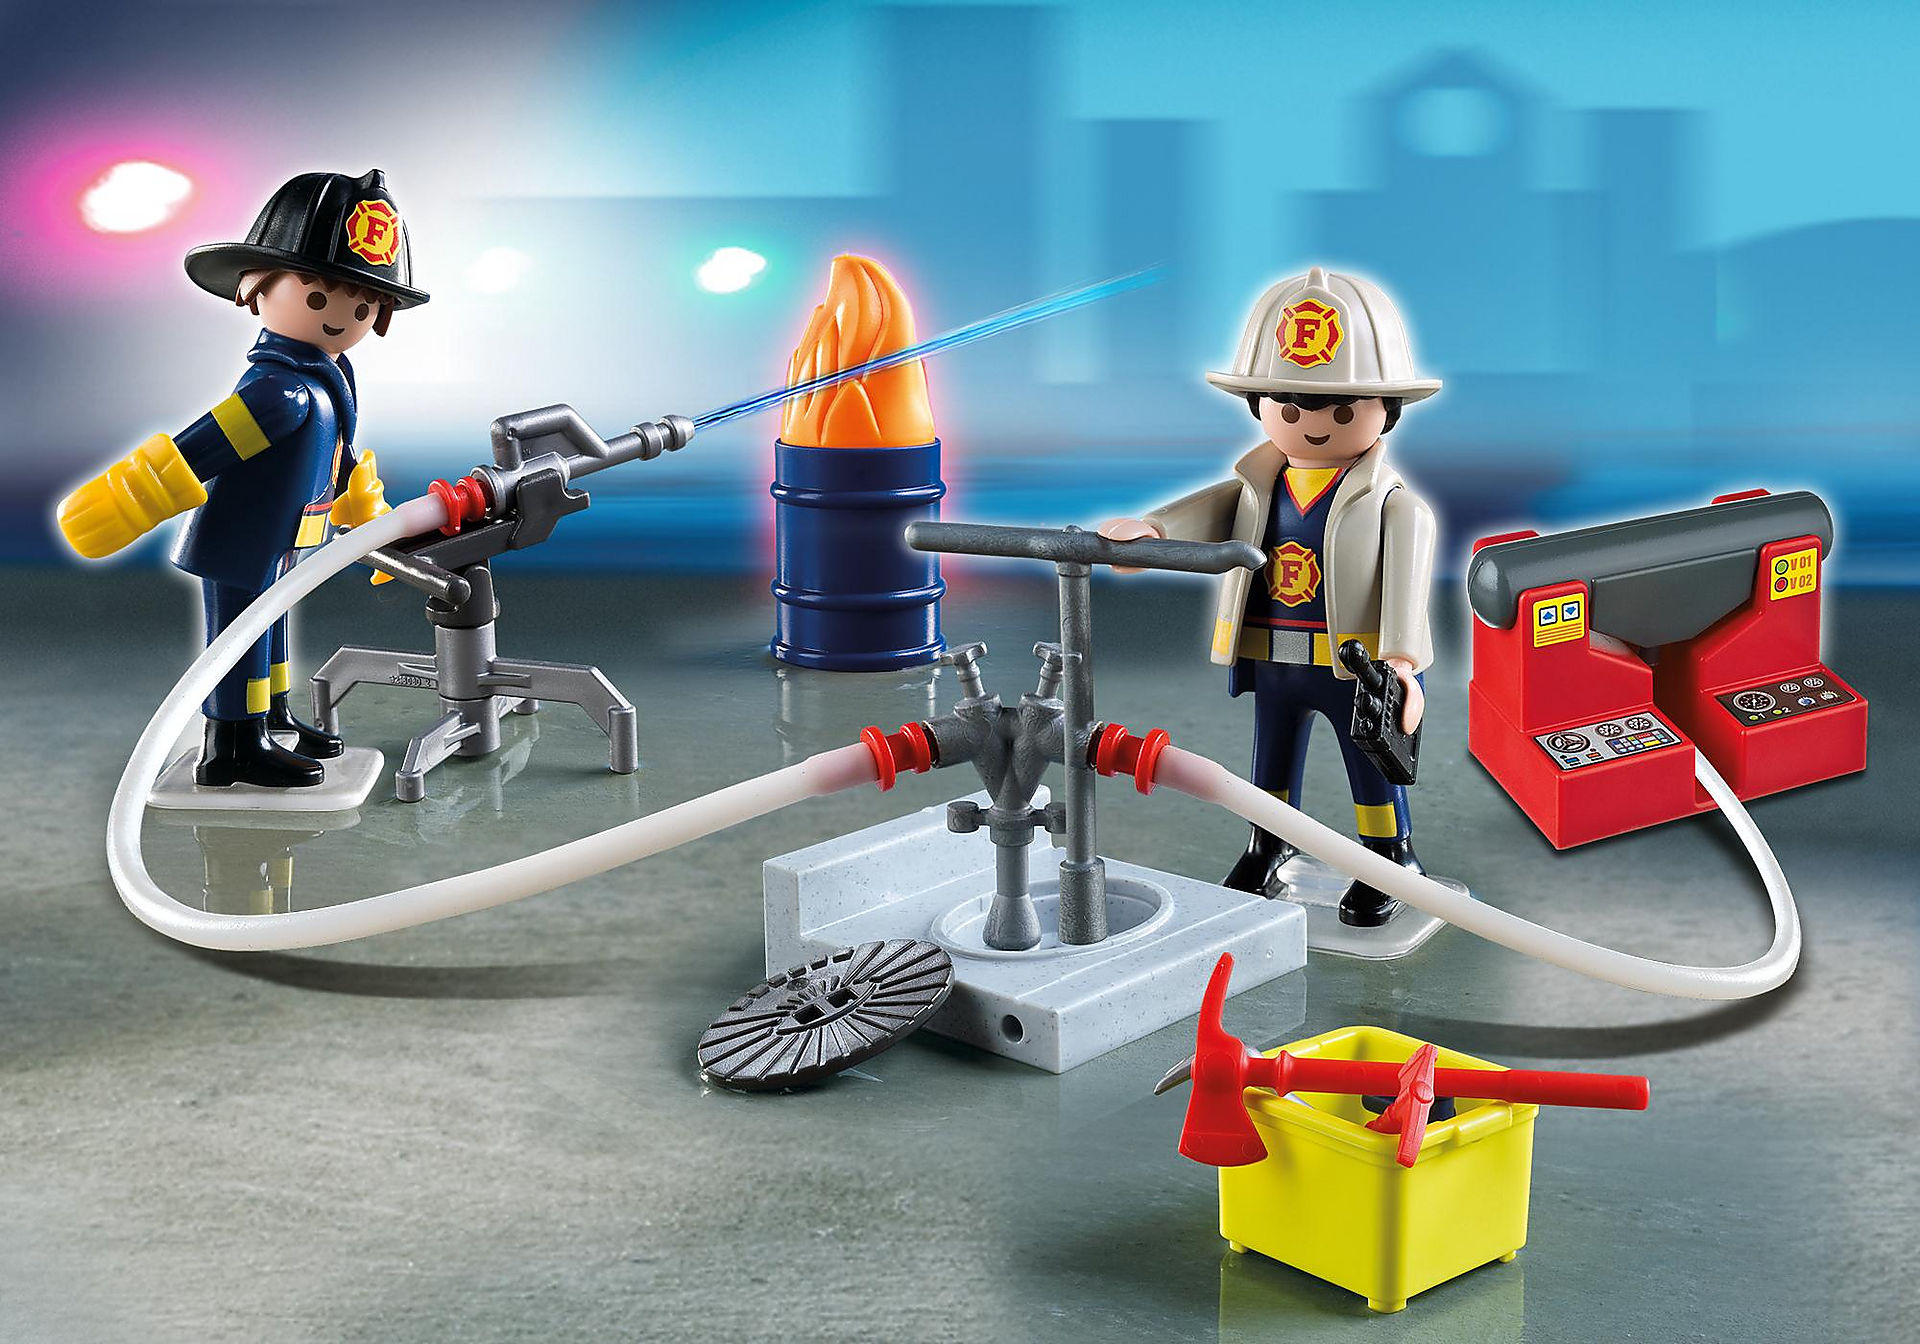 5973 Carrying Case Firemen zoom image1